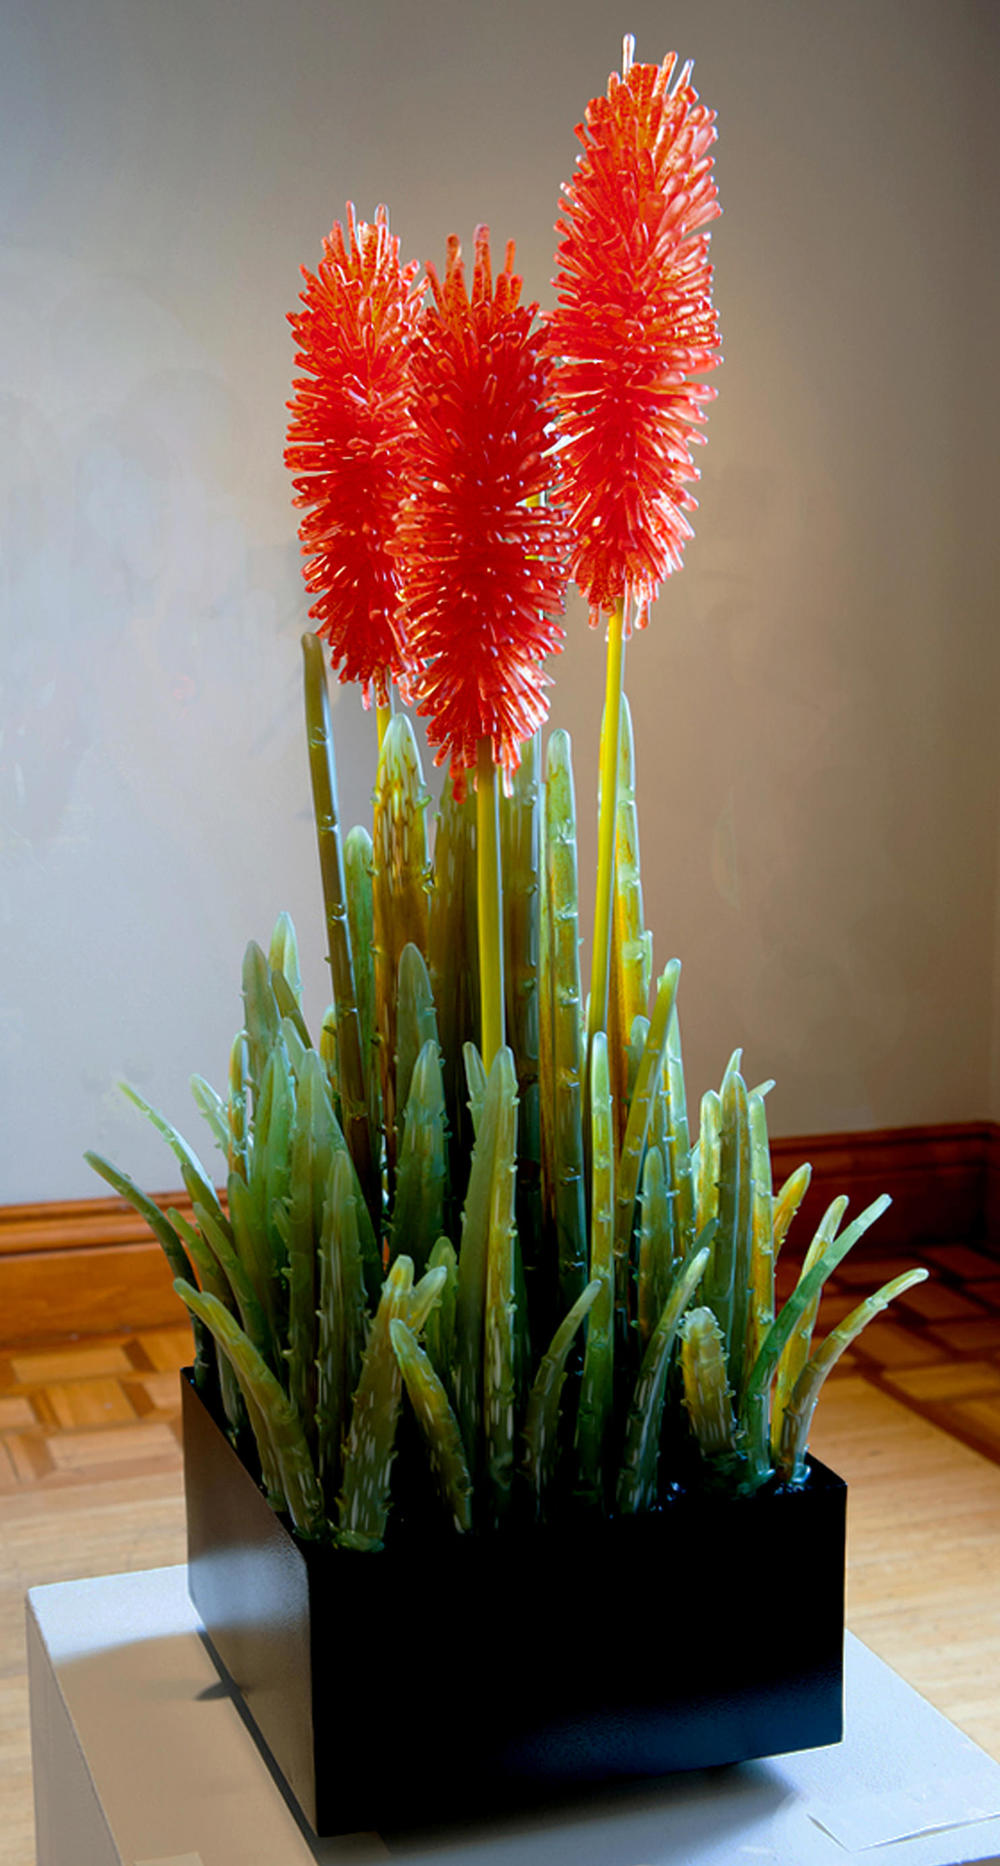 Blossoming Aloe in Vermillion.